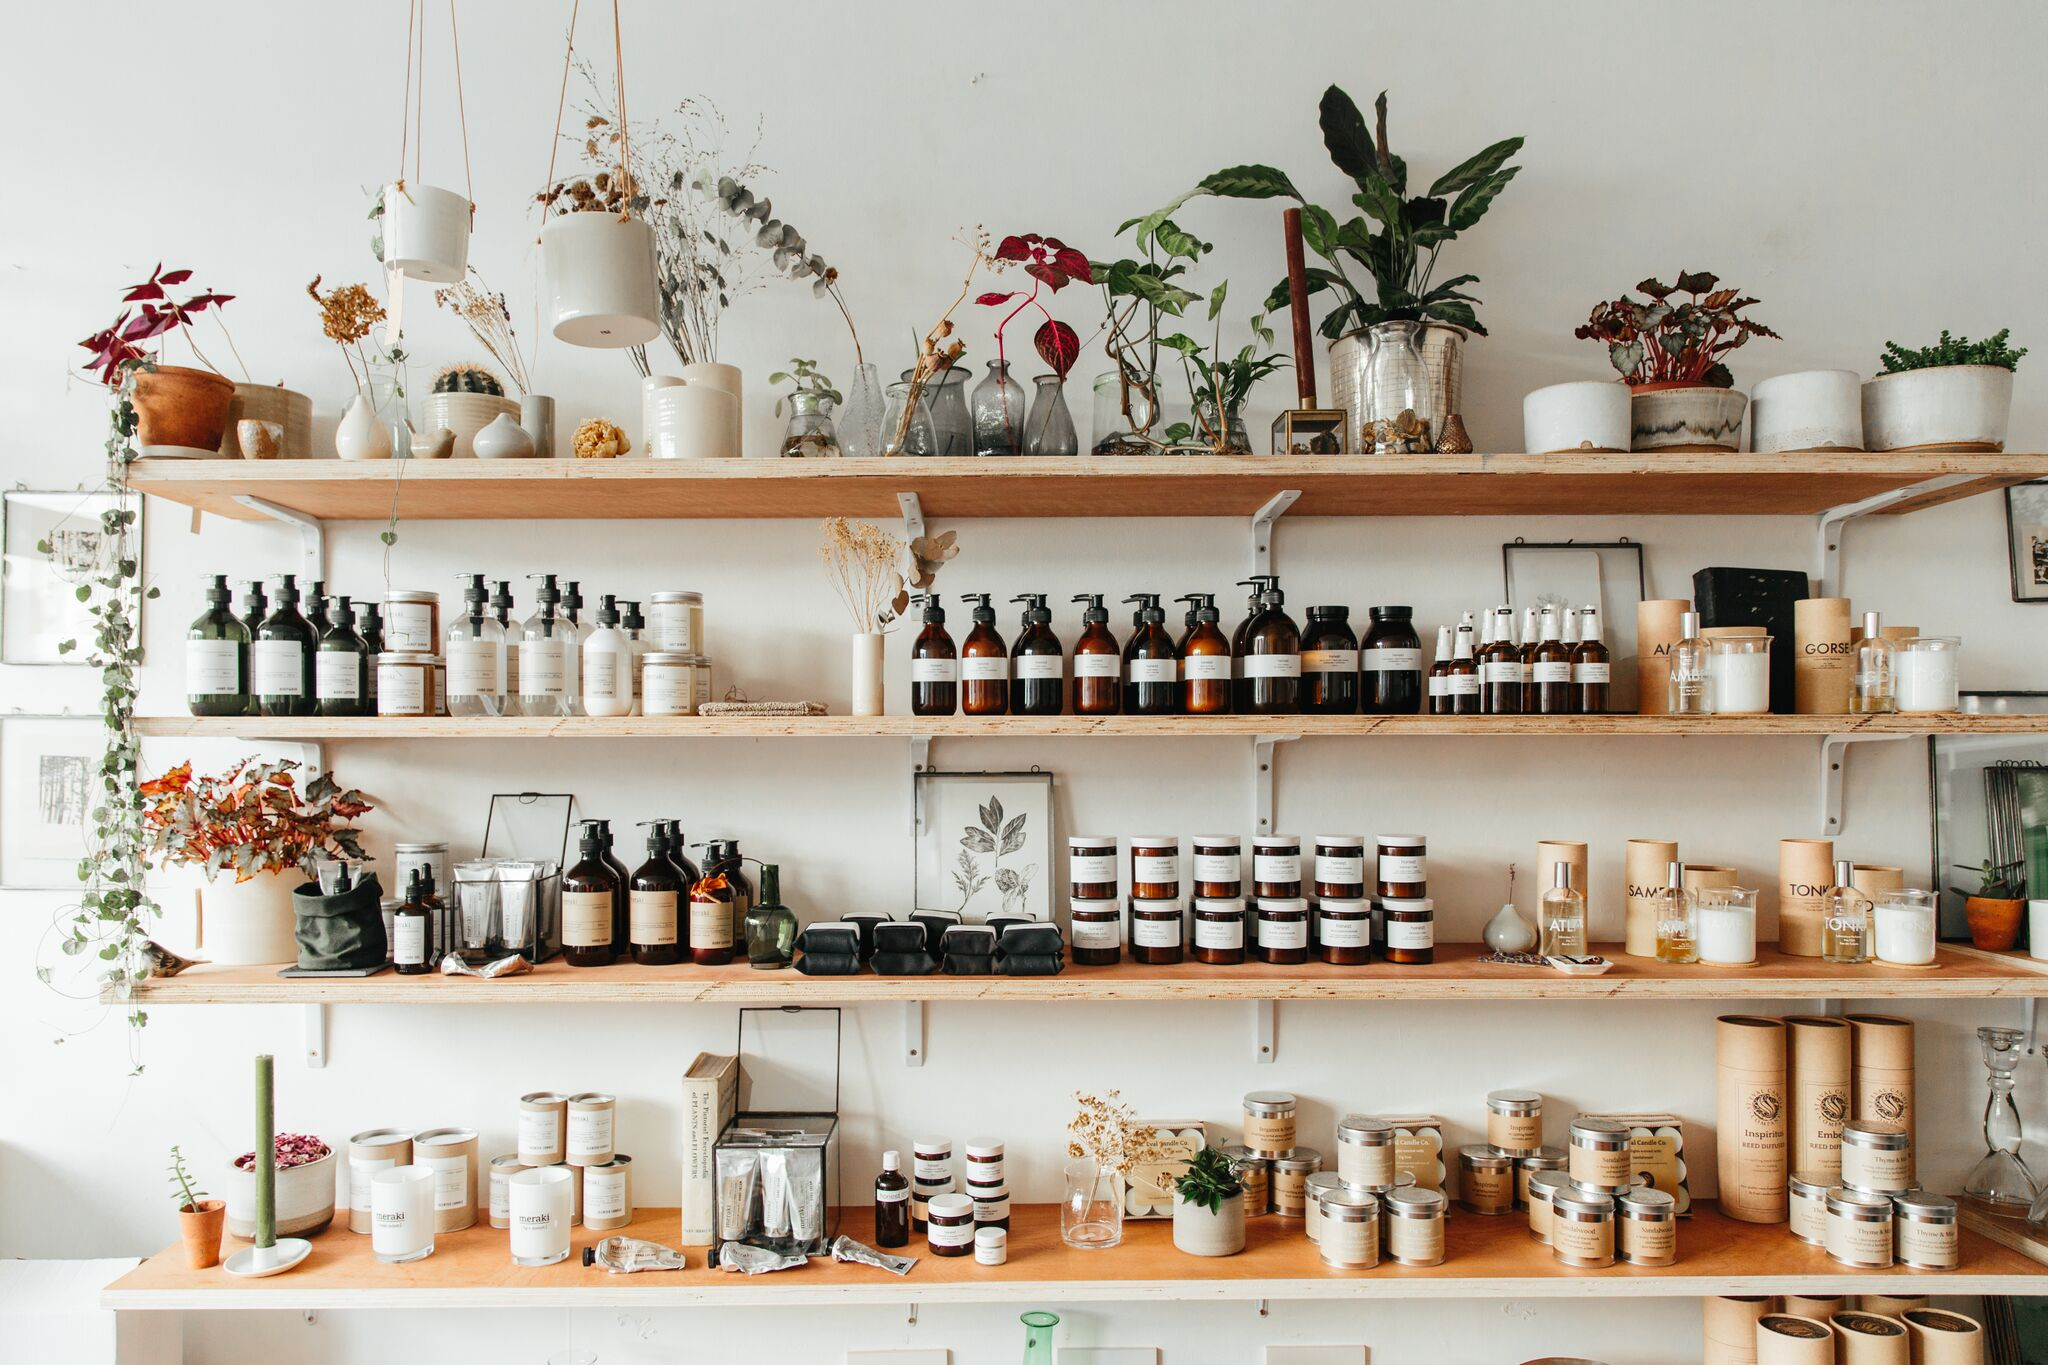 Shelves stocked full of products at Botany